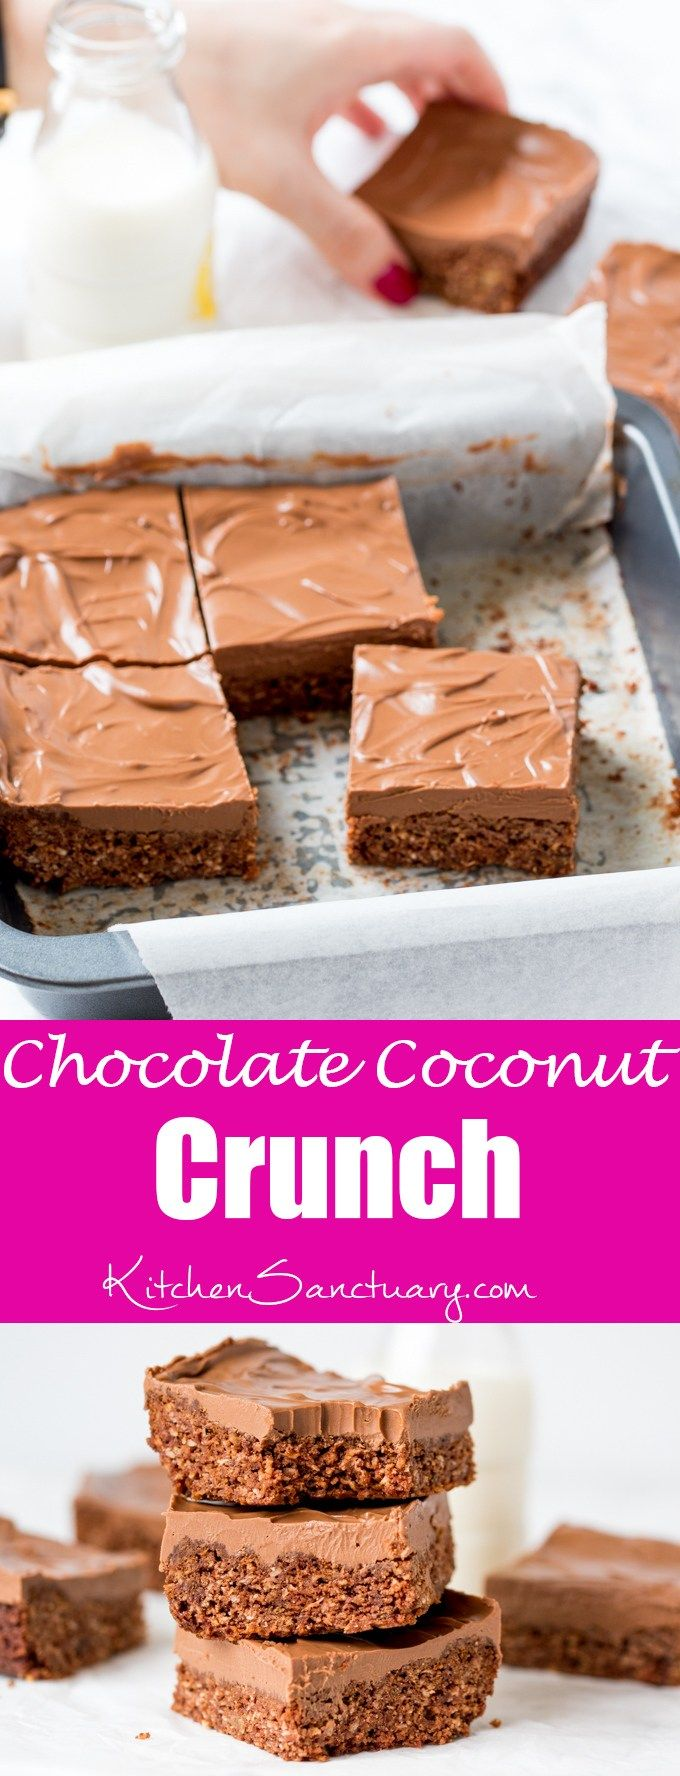 Chocolate Coconut Crunch - my take on the Aussie Crunch we used to get at school. They're crunchy, chewy, very chocolatey and so addictive!